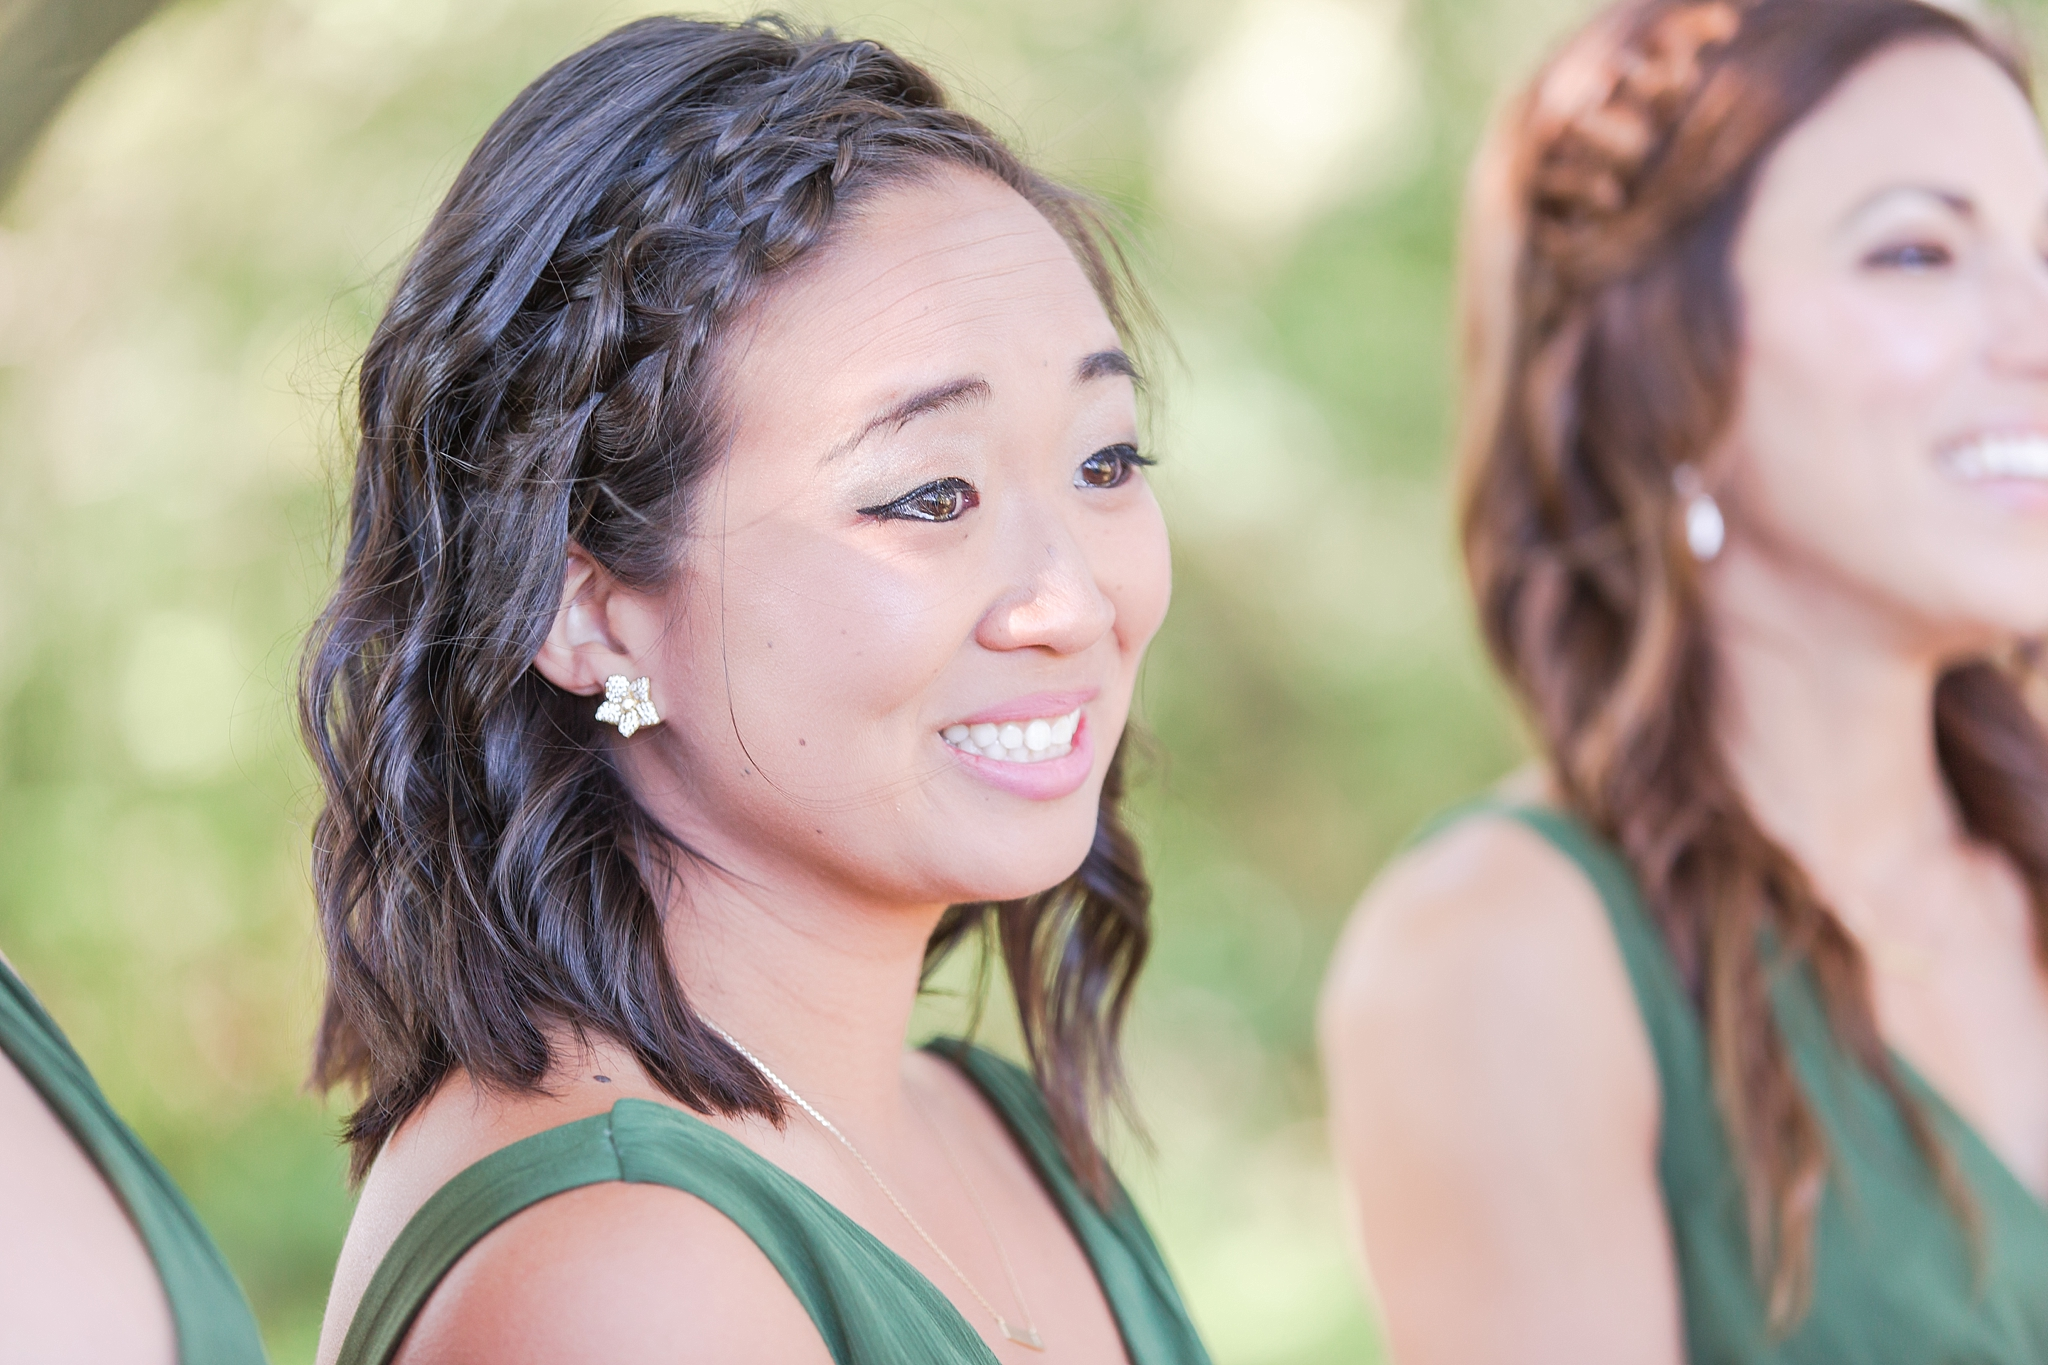 natural-rustic-wedding-photos-at-frutig-farms-the-valley-in-ann-arbor-michigan-by-courtney-carolyn-photography_0058.jpg